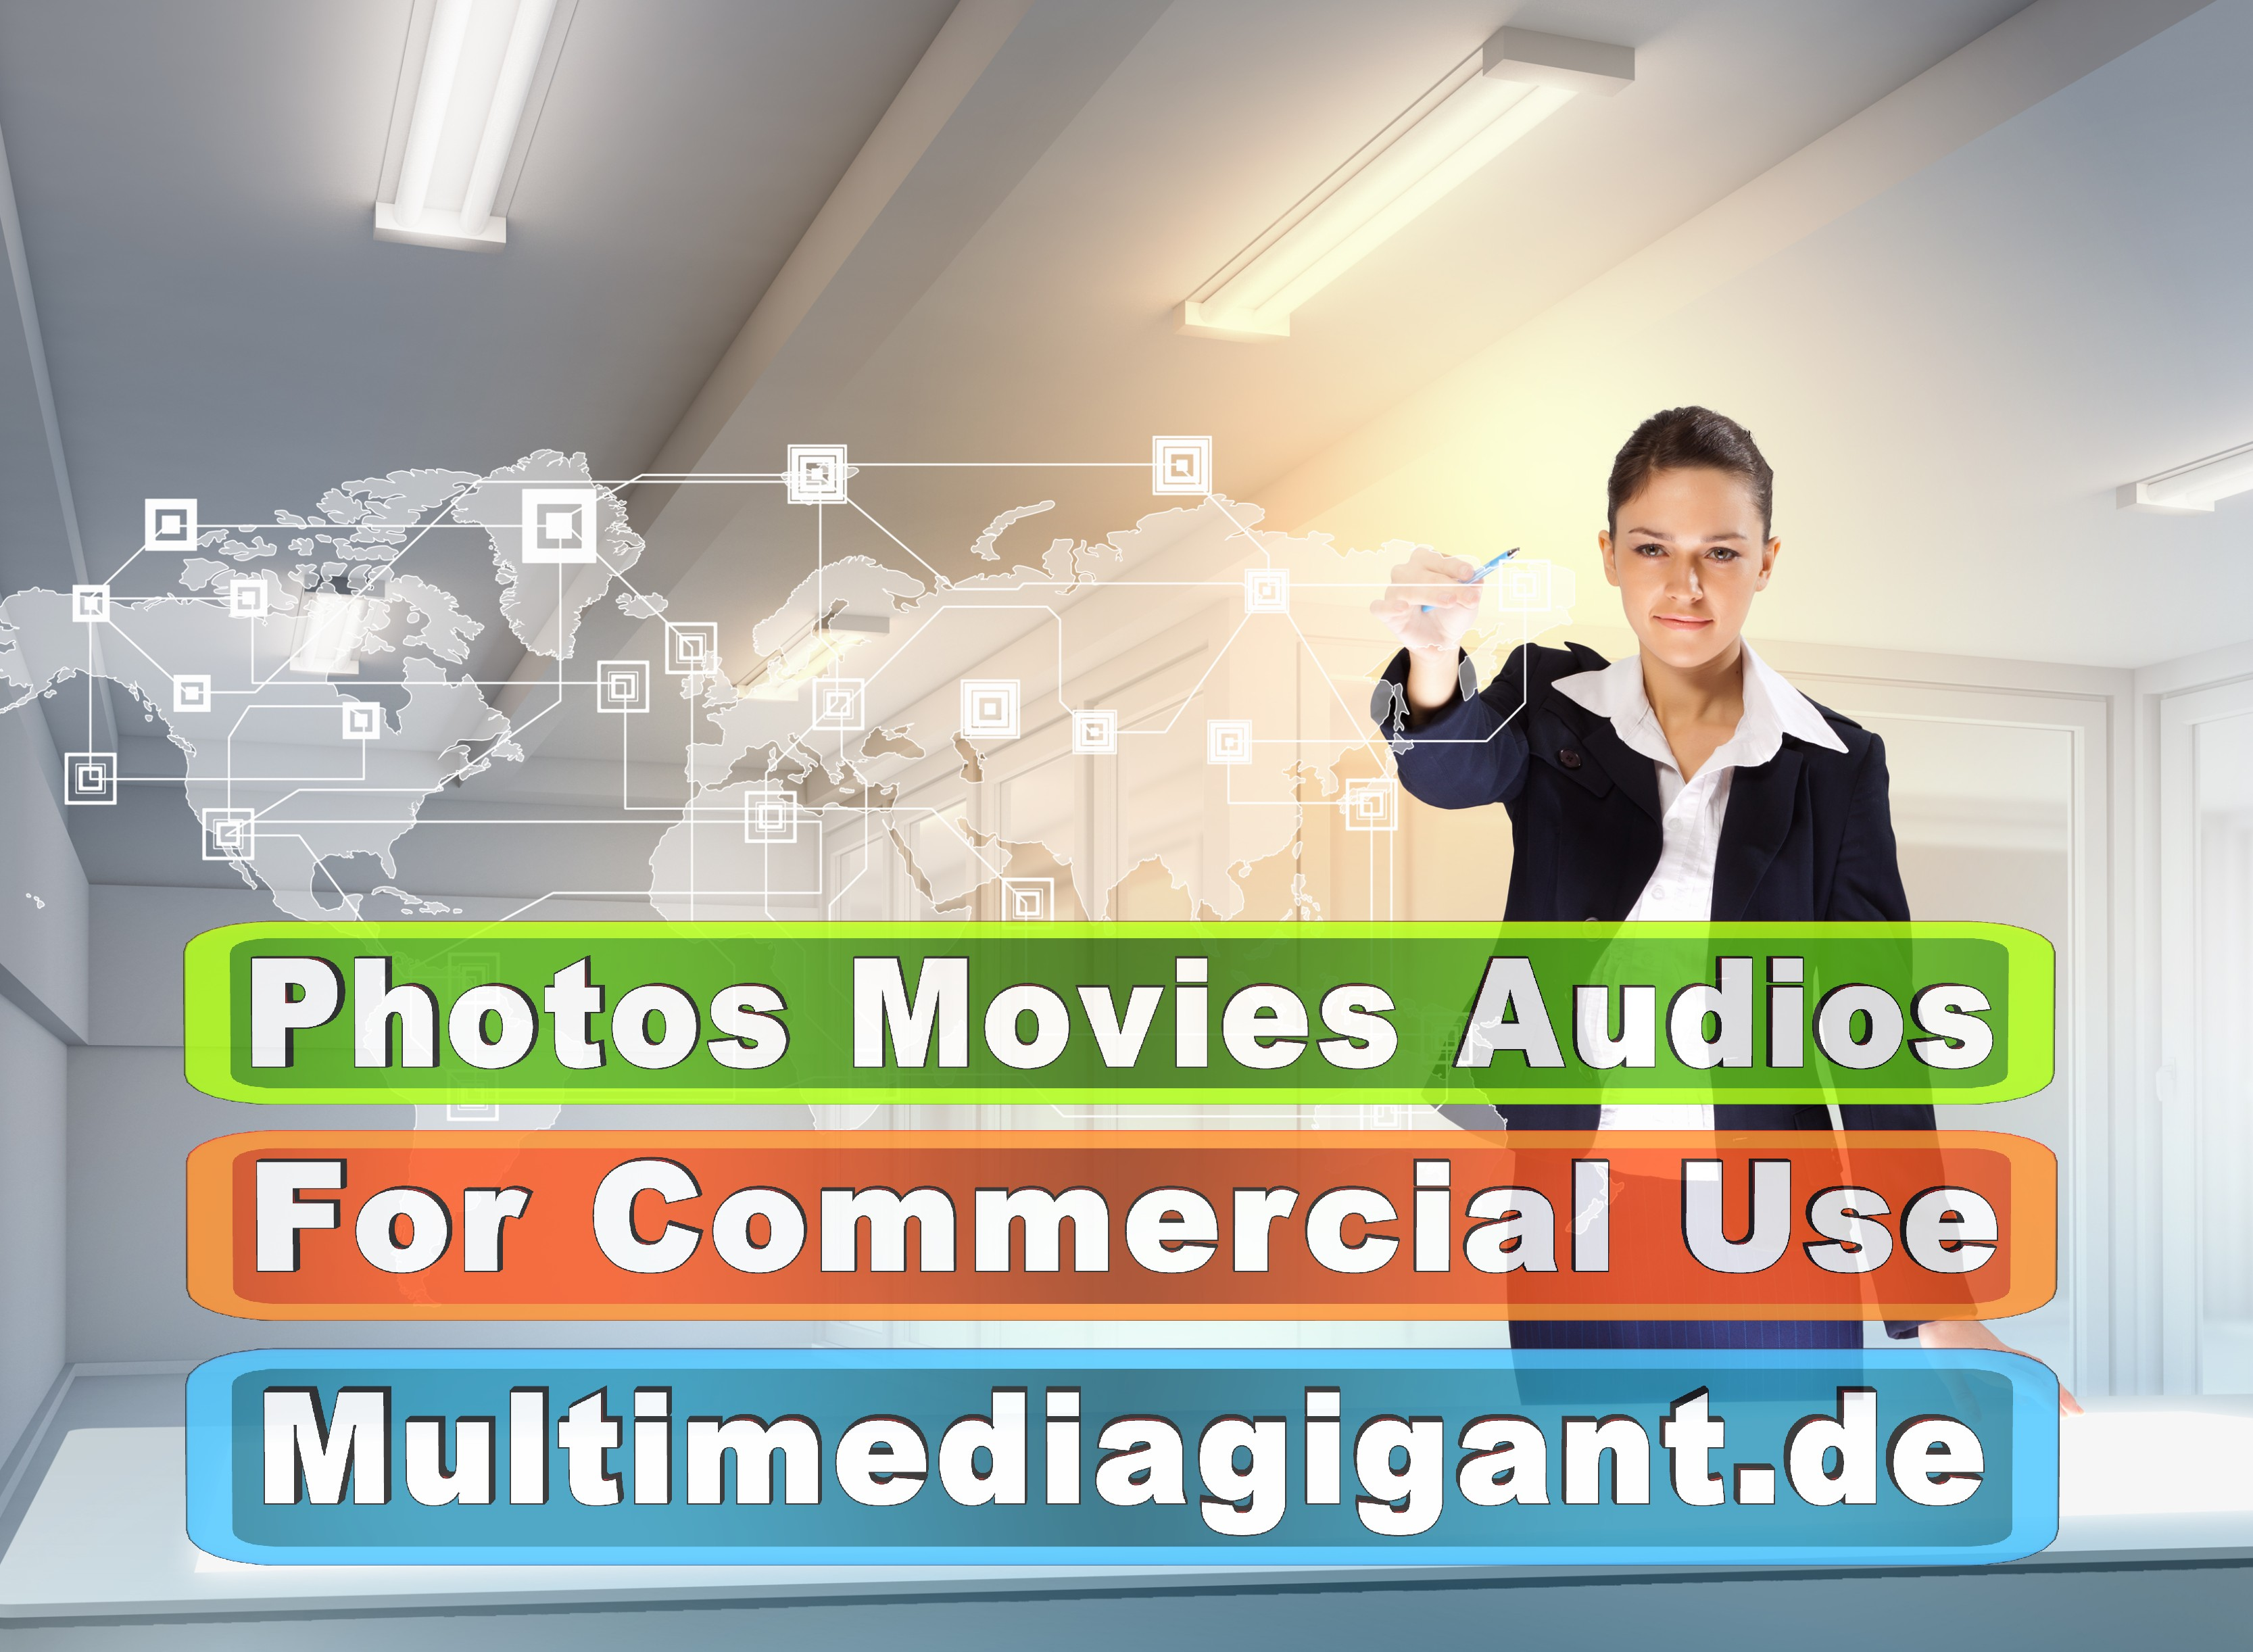 Royalty Free Photos For Commercial Use